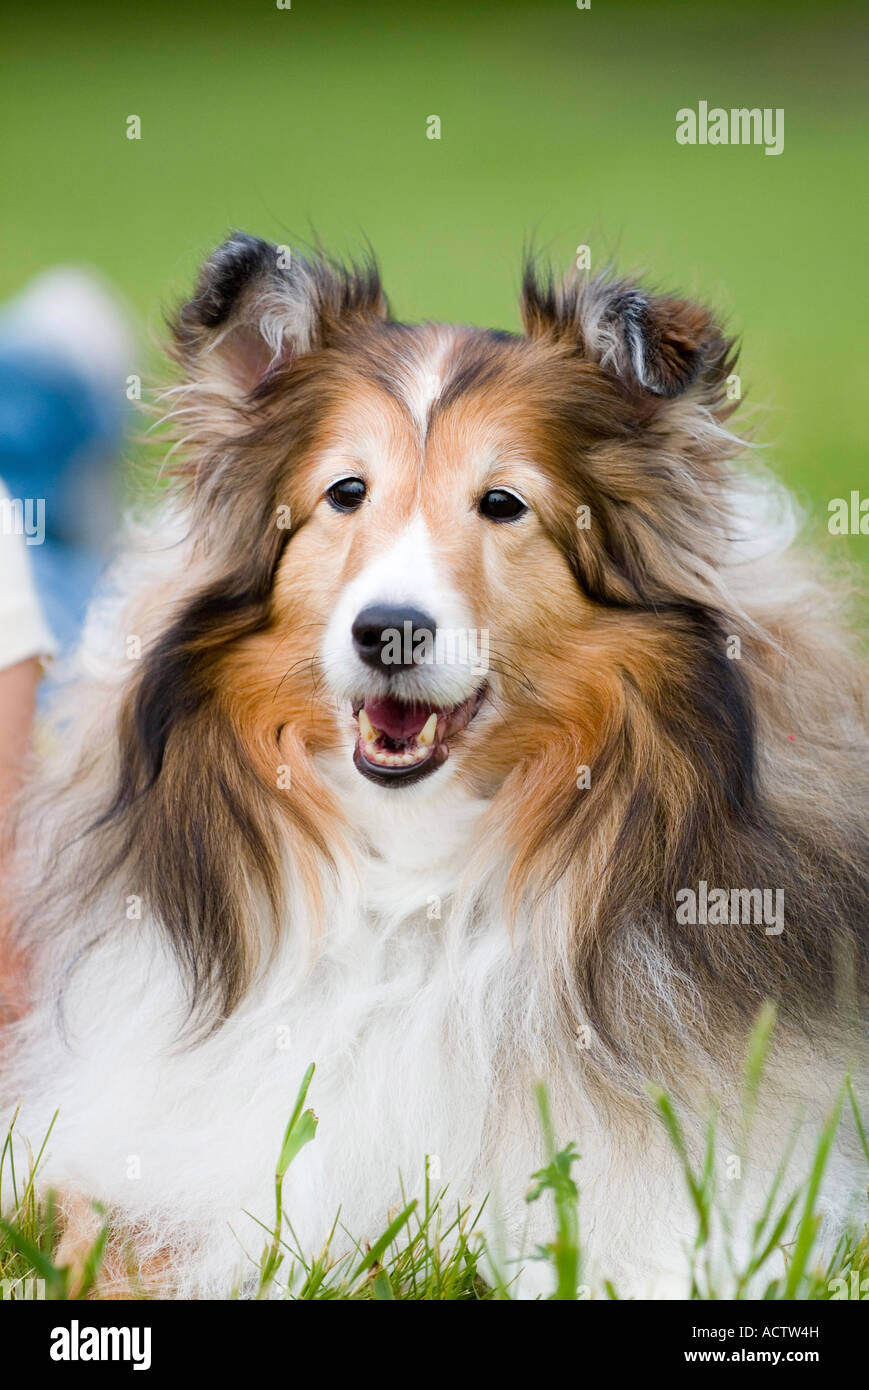 A Portrait Of An Australian Shepherd Brown And White Dog Stock Photo Alamy